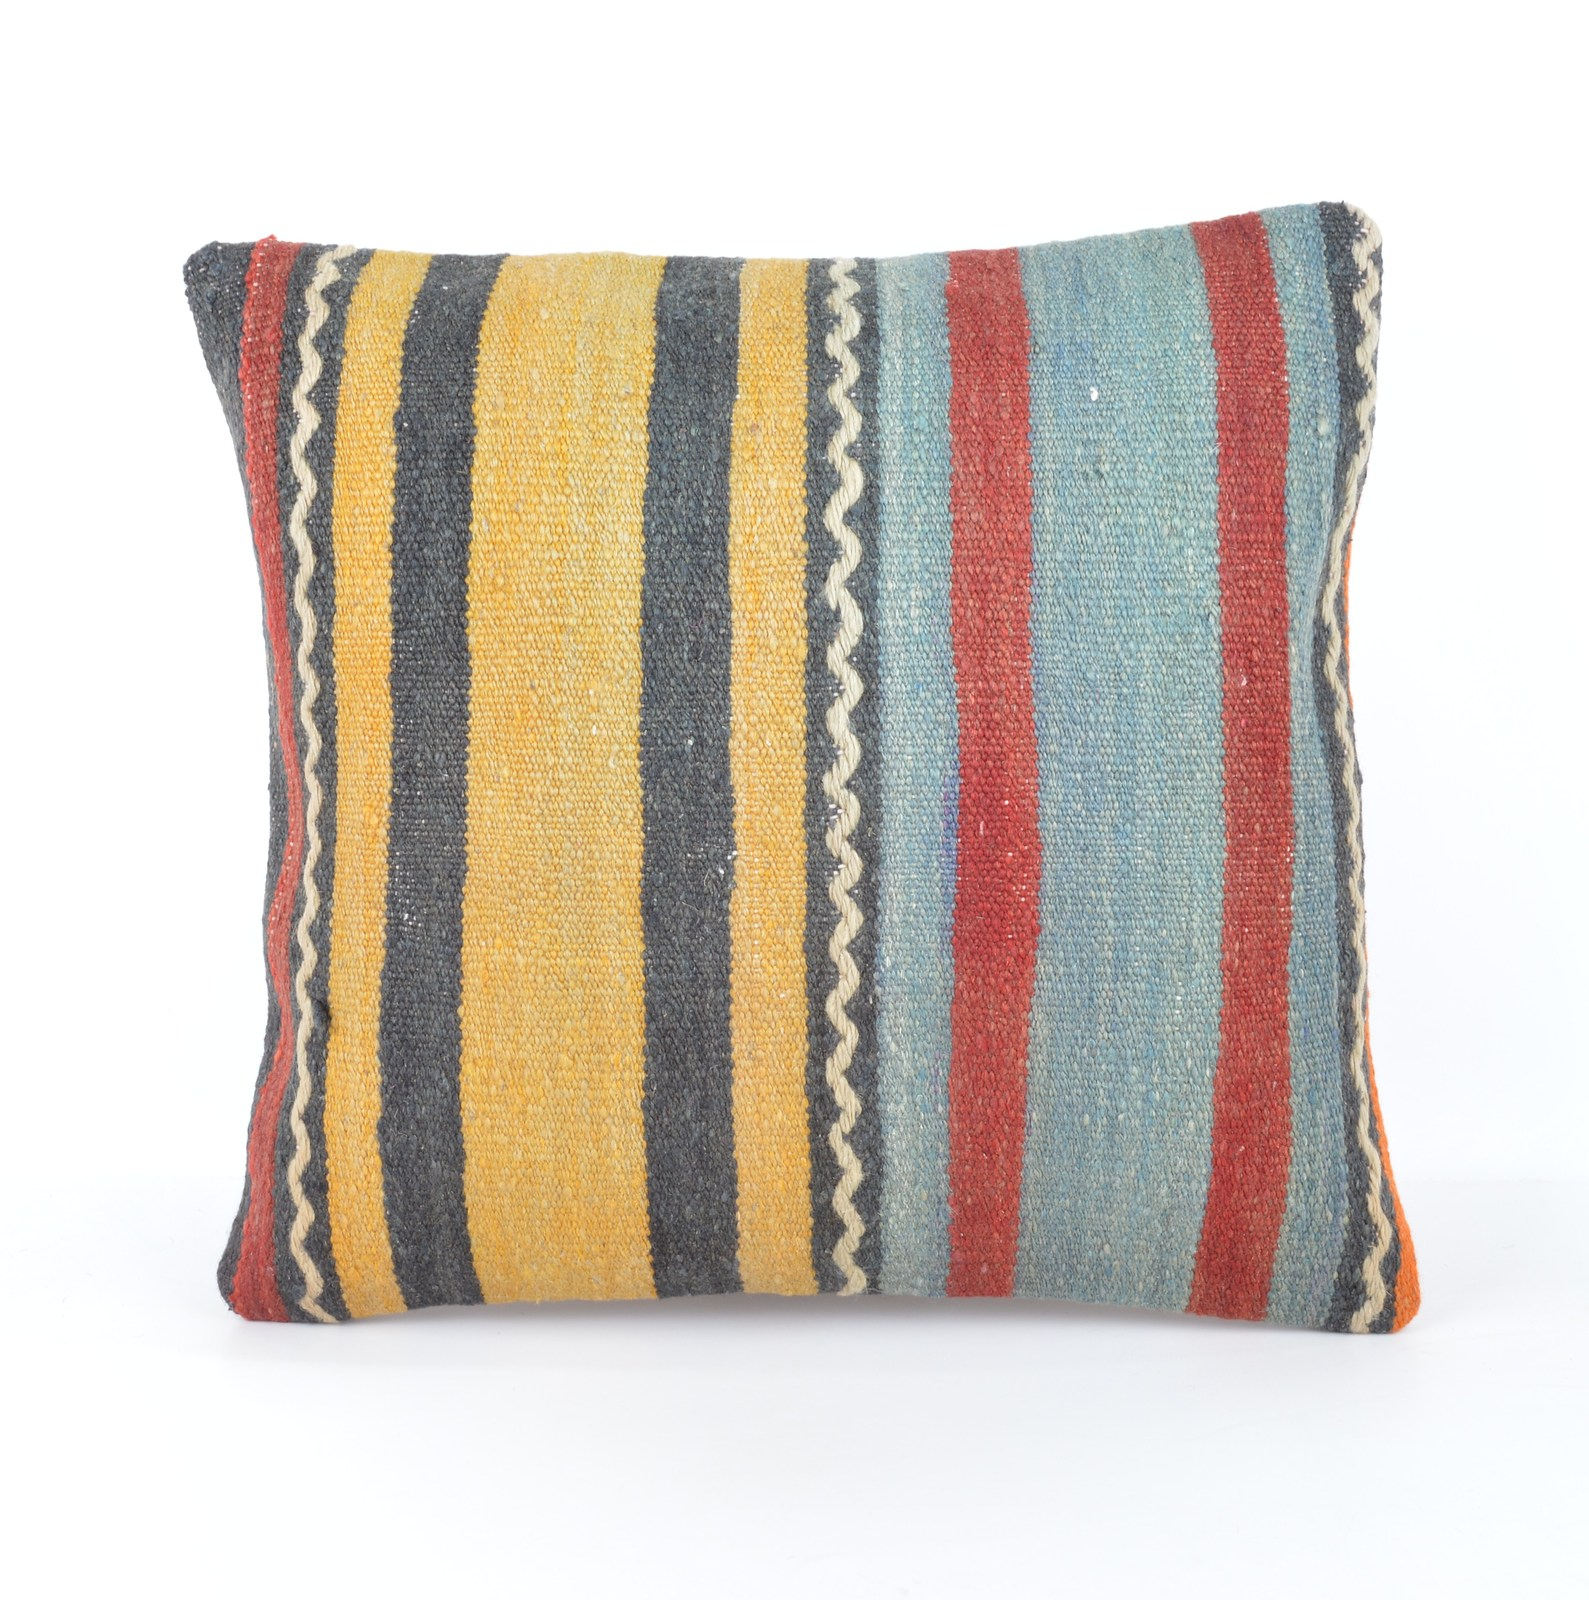 Throw Pillows In Ghana : discount kilim pillow cushion covers sale kilim throw pillows sale rug pillow - Pillows